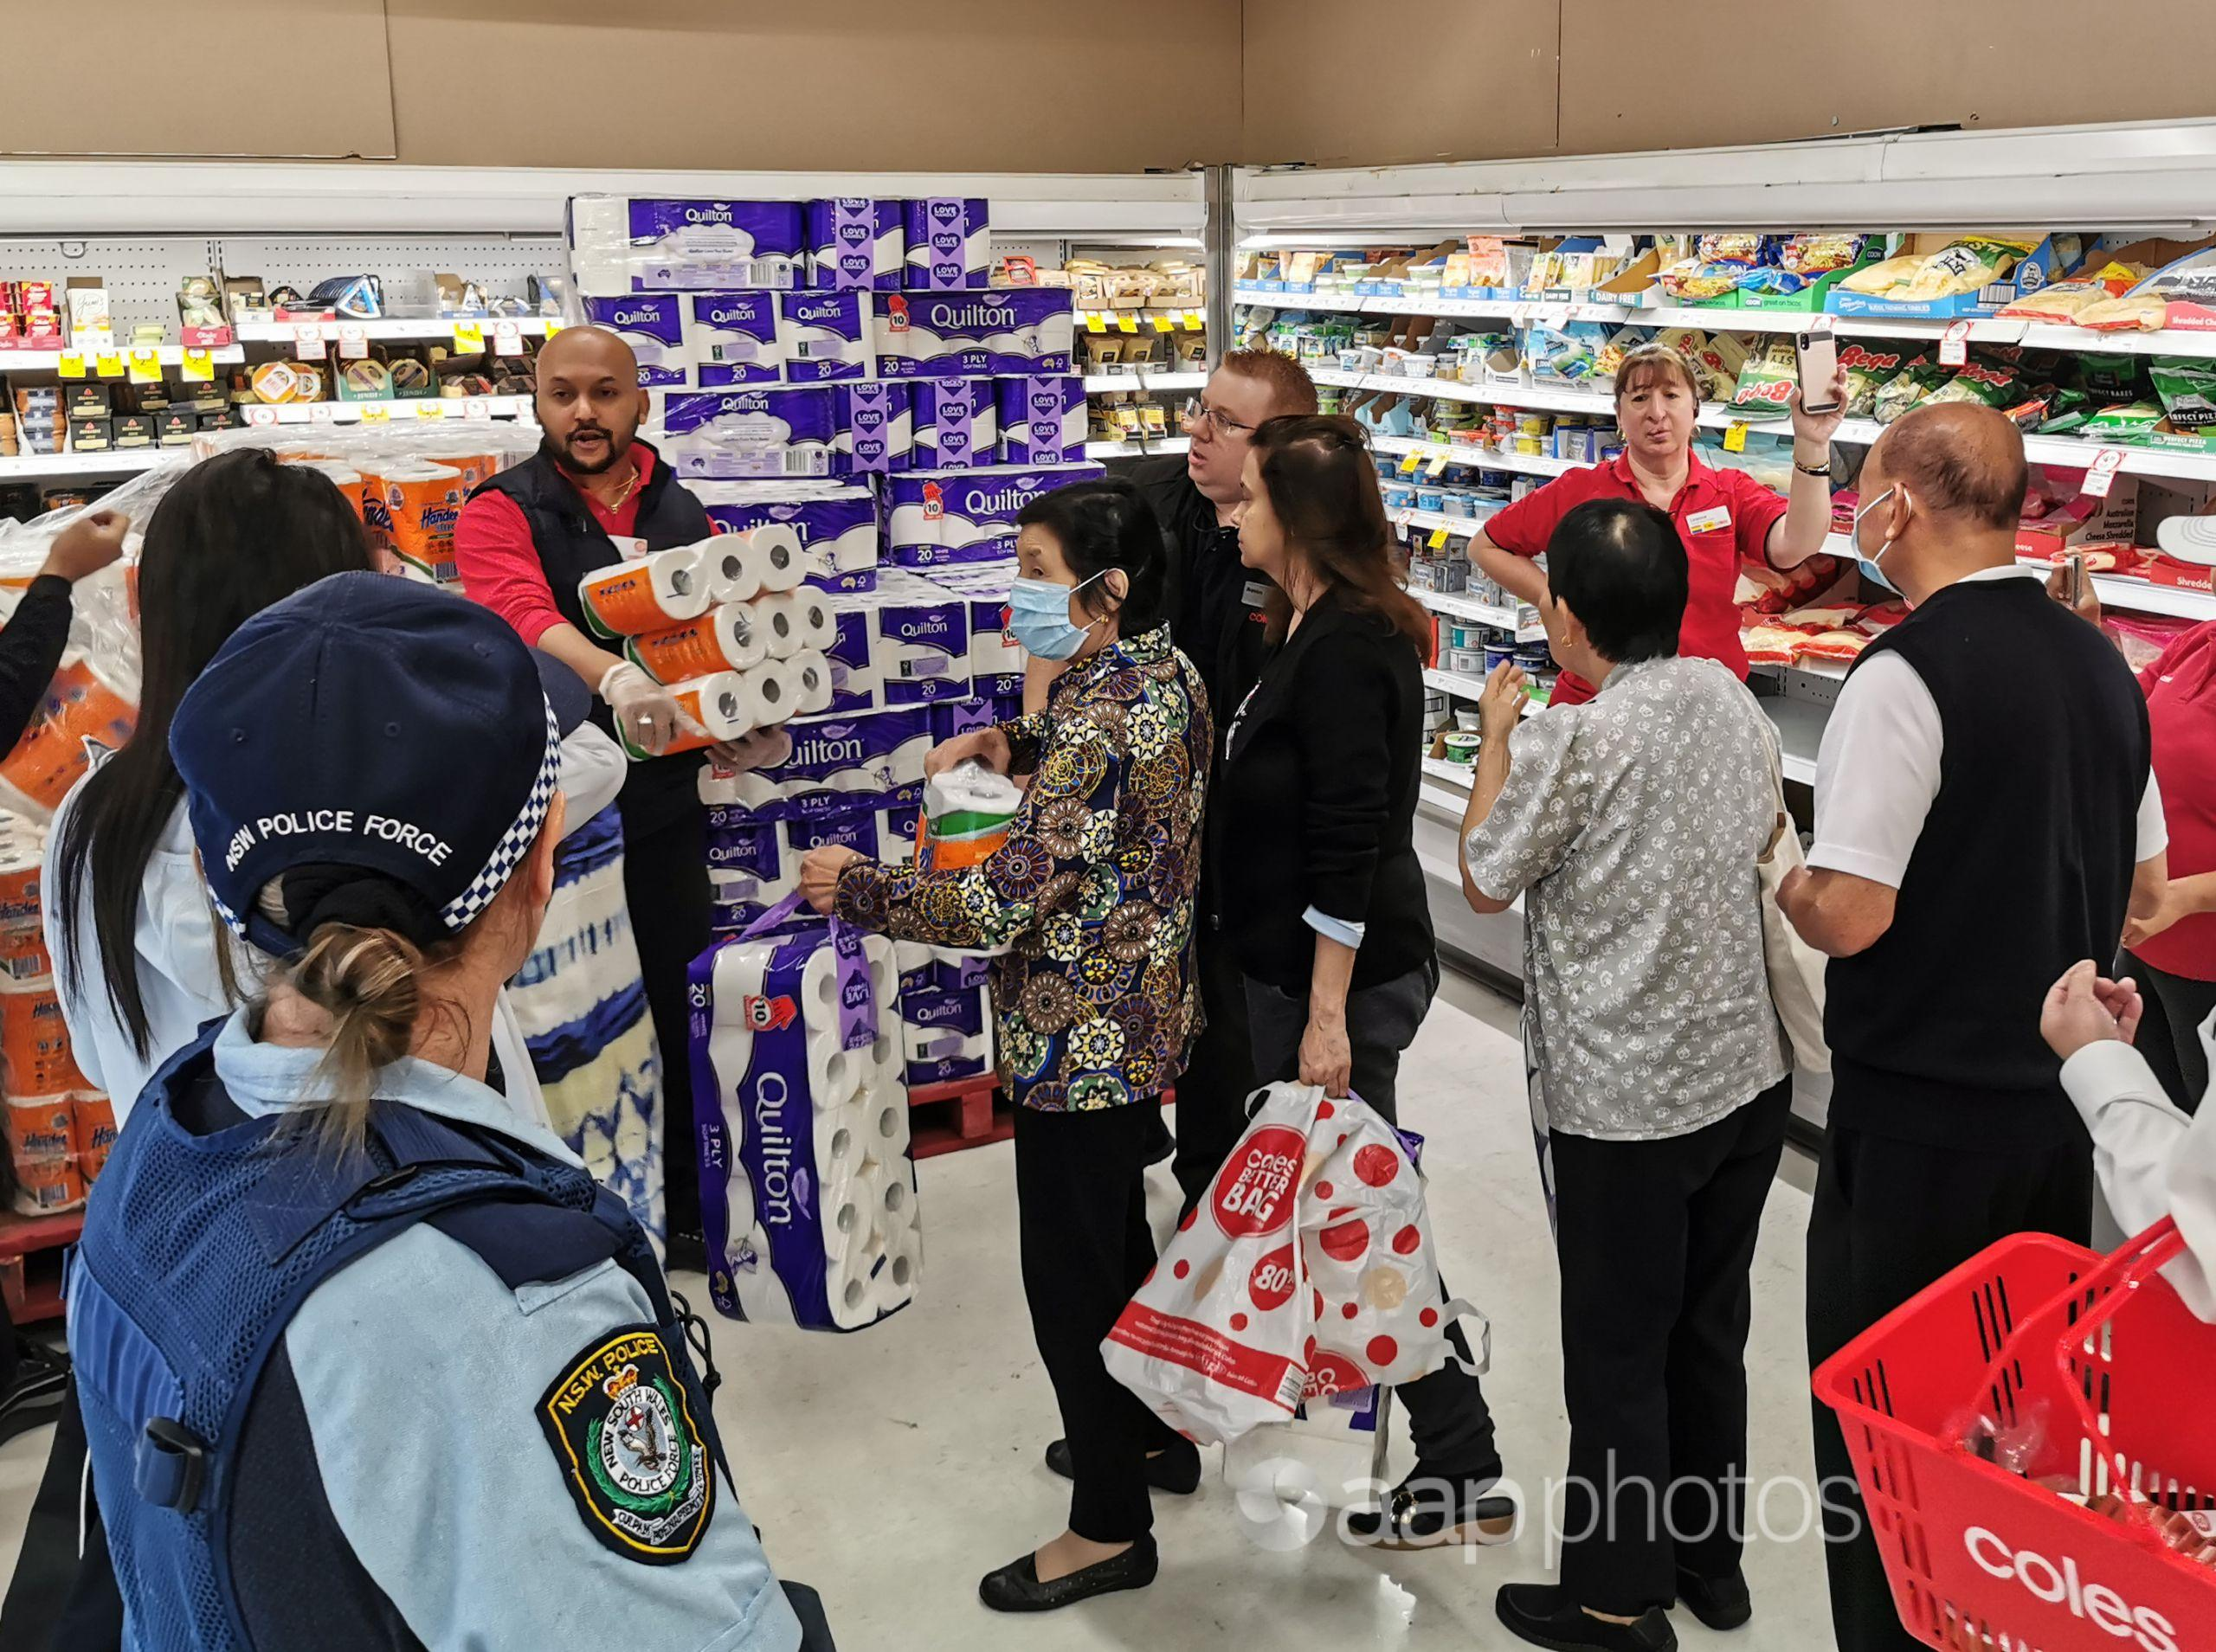 Police watch distribution of toilet paper and other basics.